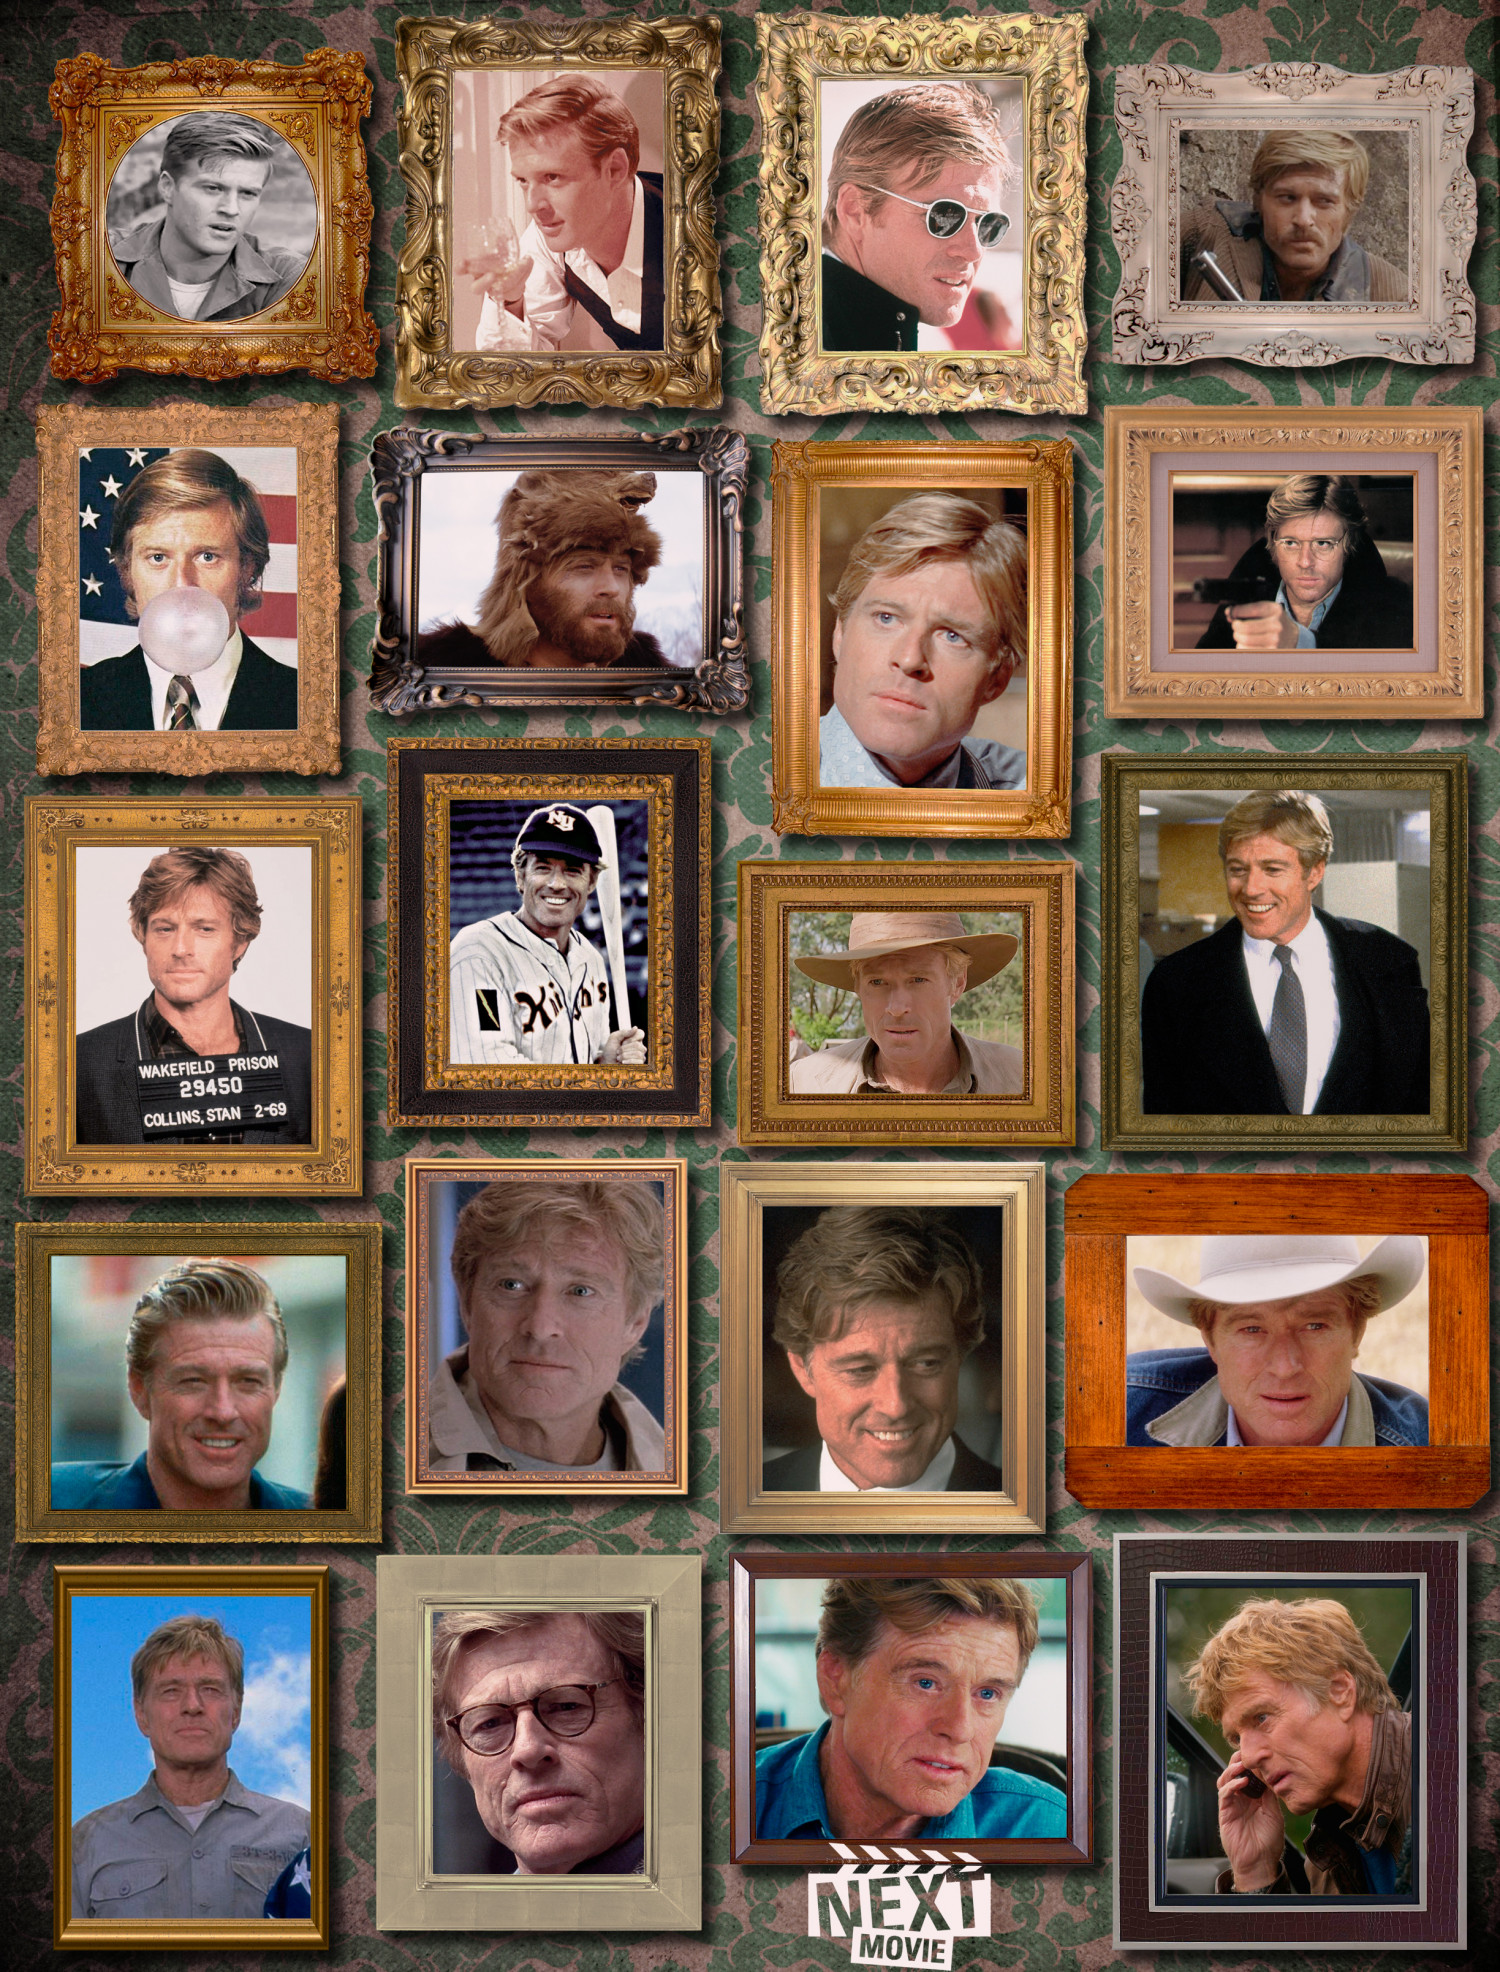 Robert Redford Wall of Aging Infographic